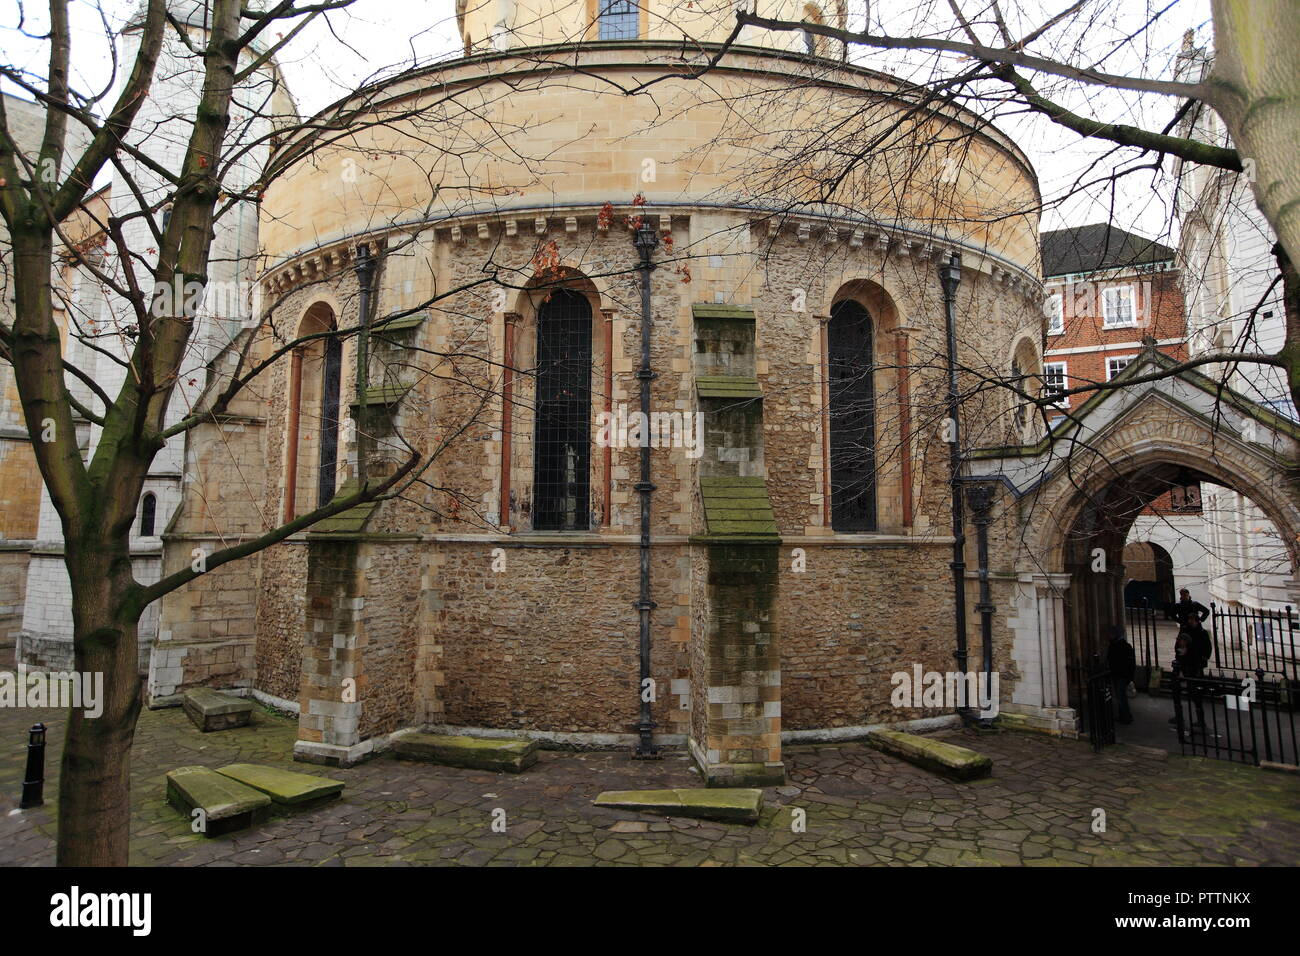 The Temple Church in London, built by the Knights Templar as their English headquarters in late 12th-century. - Stock Image